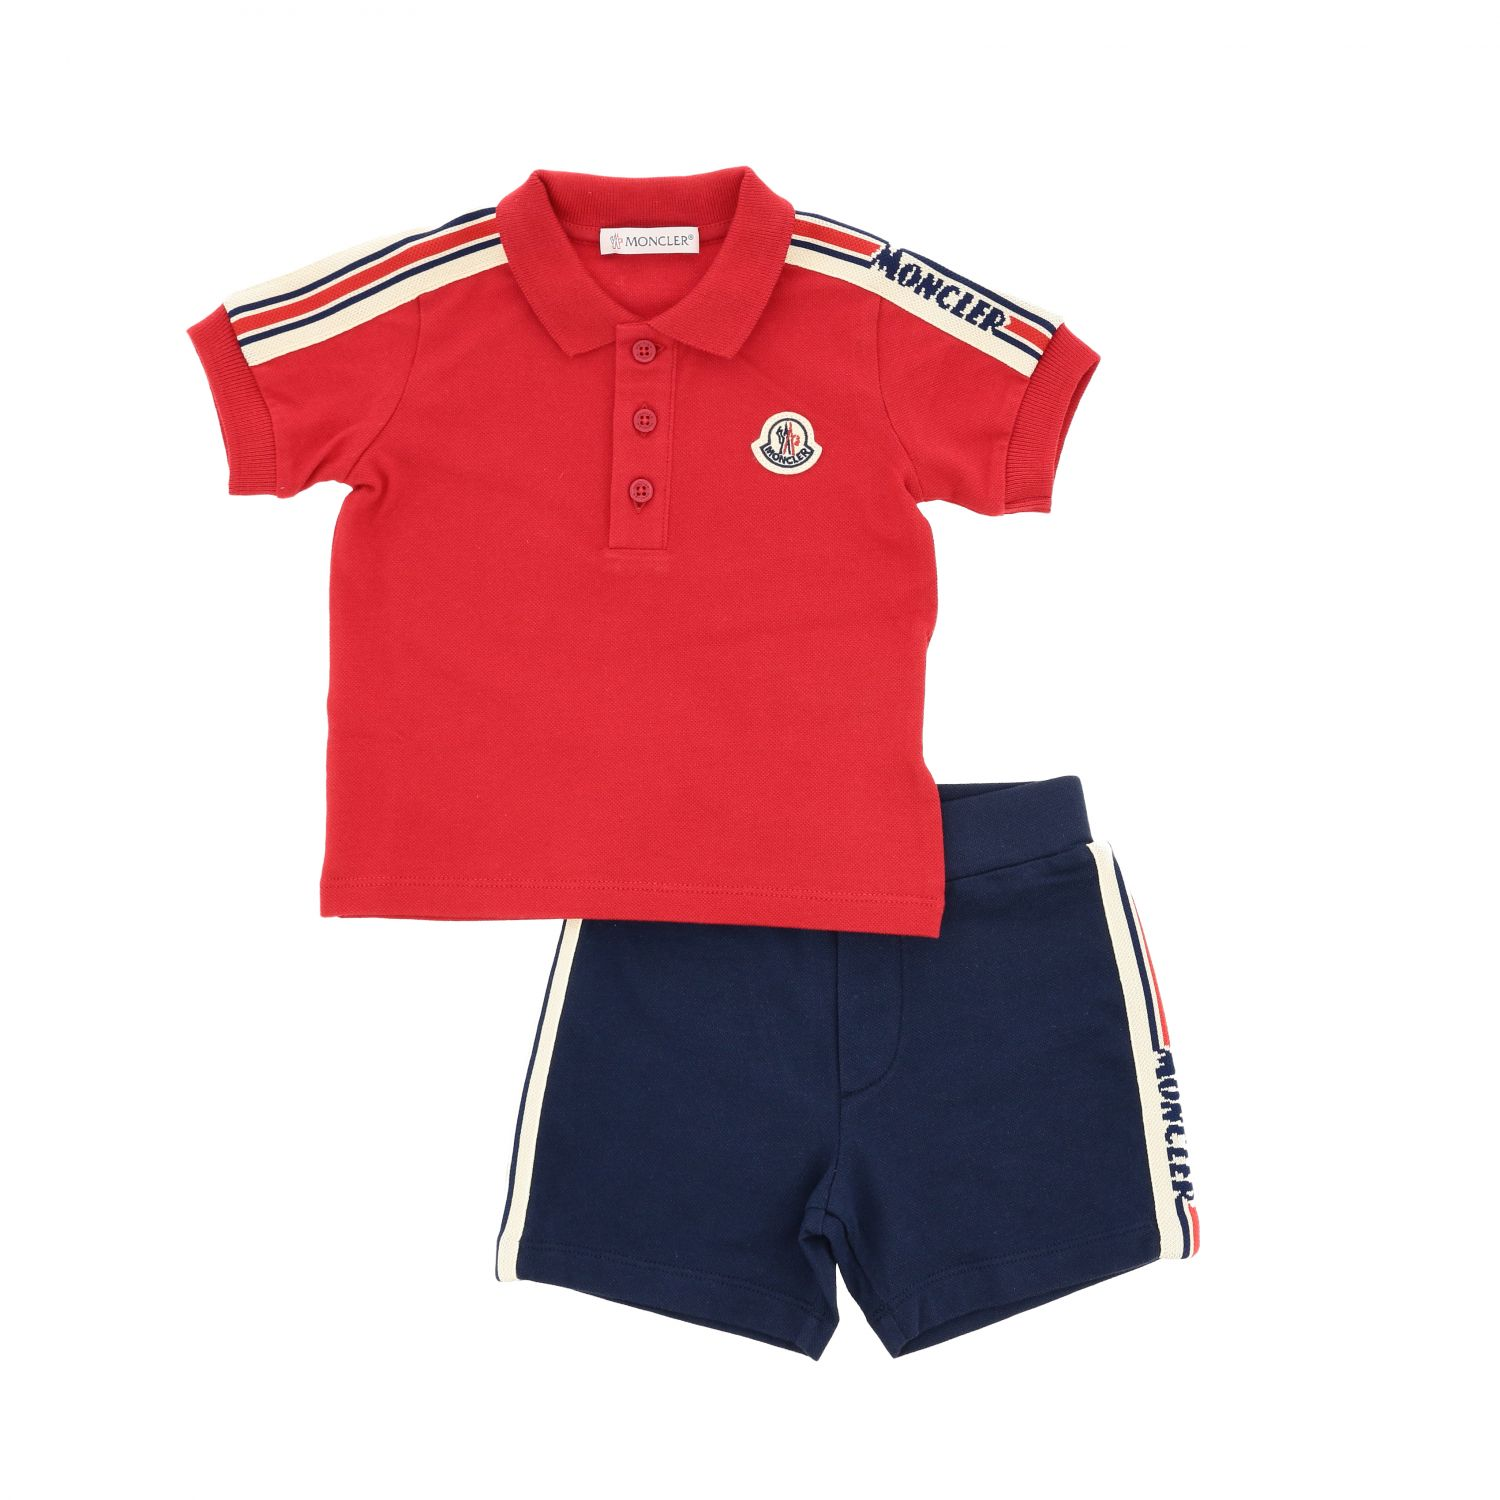 Moncler Polo set + shorts with logo and side bands outfit red 1